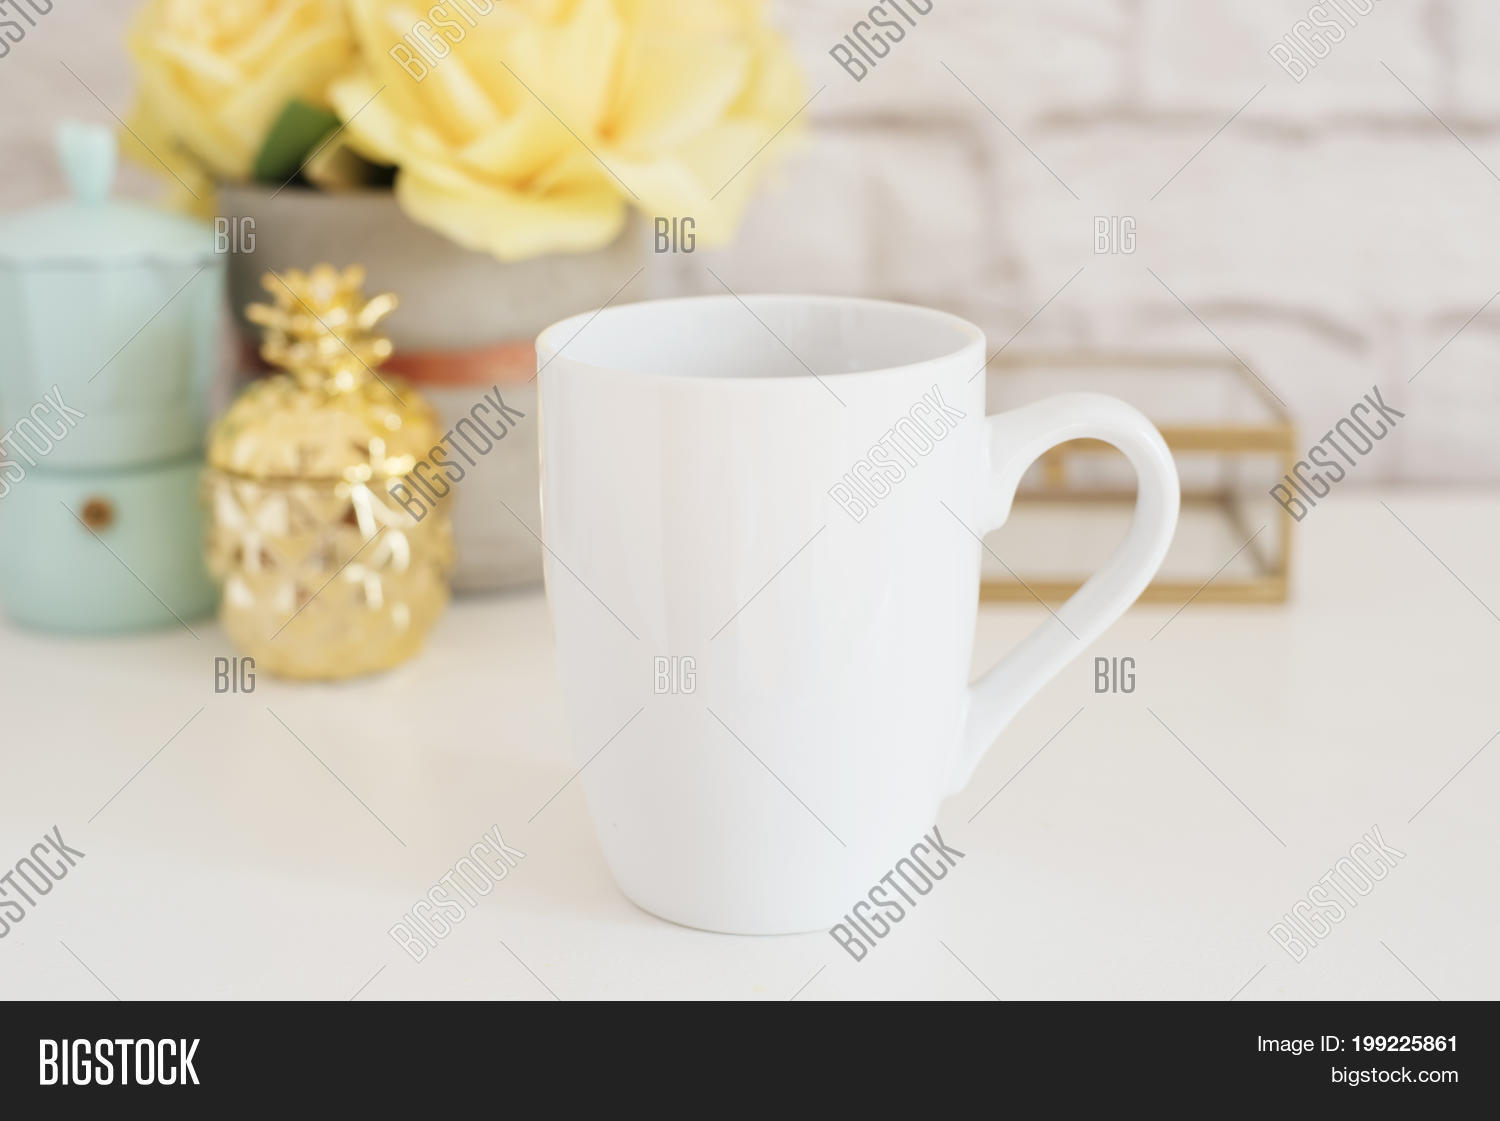 mug mockup coffee cup image photo free trial bigstock